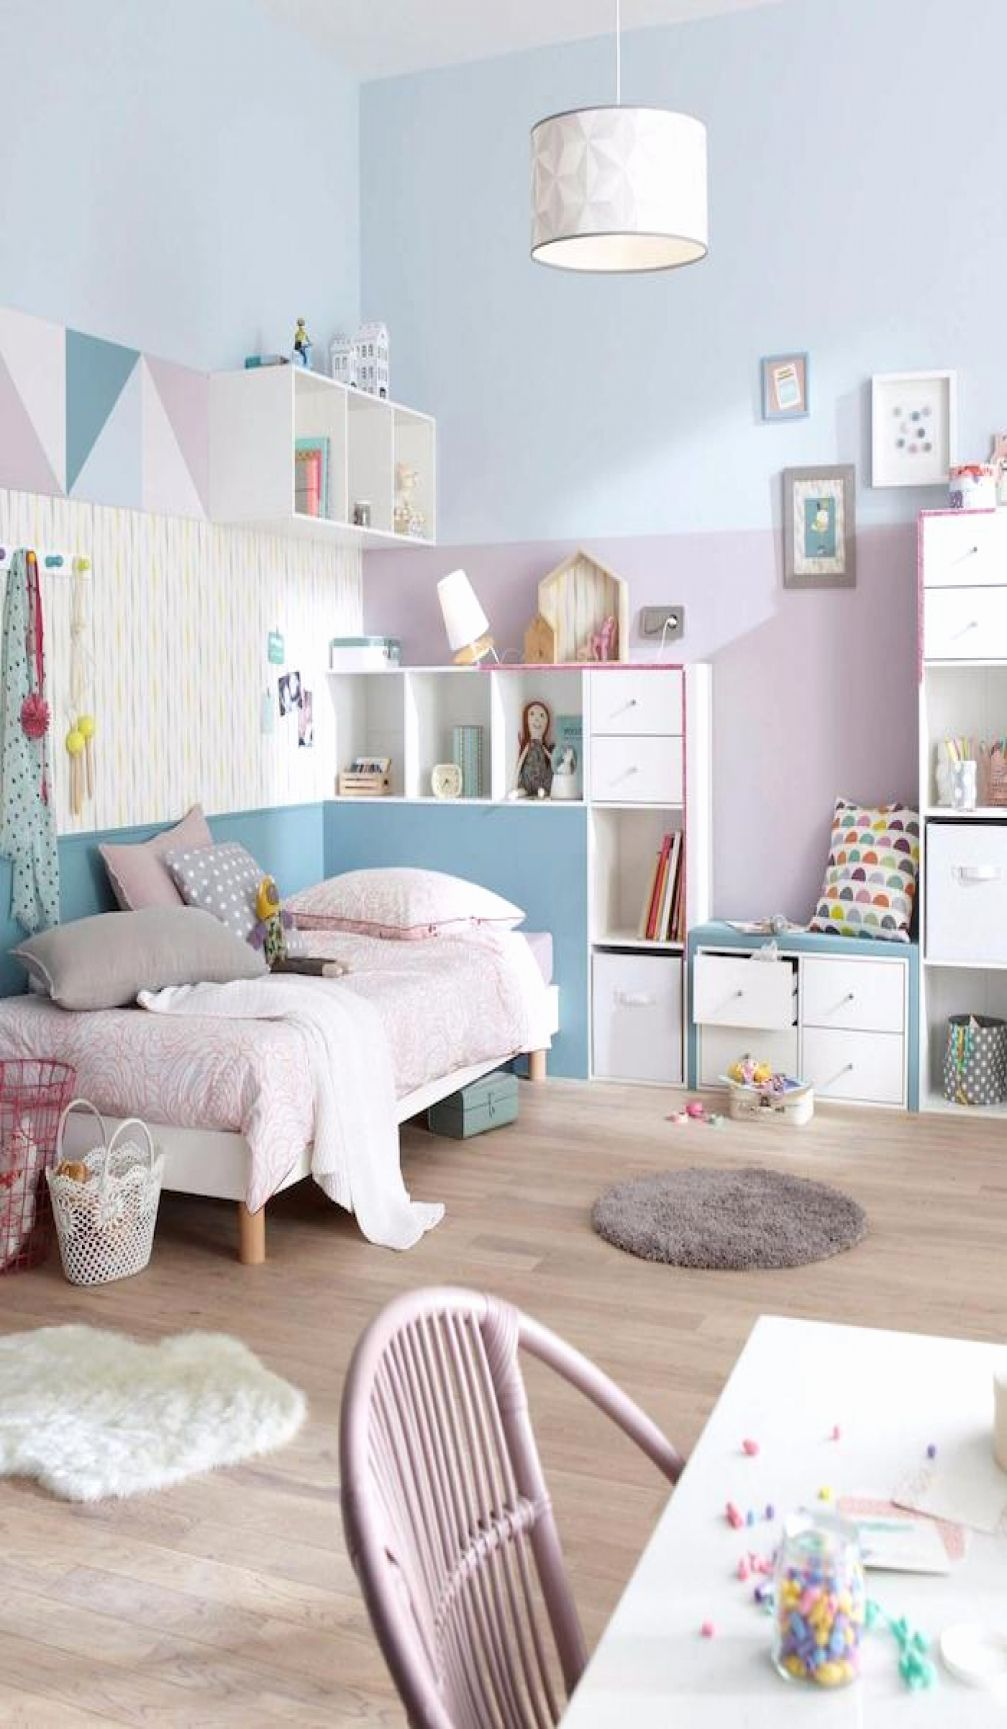 Awesome Chambre Couleur Bleu Pastel Contemporary House Chambre